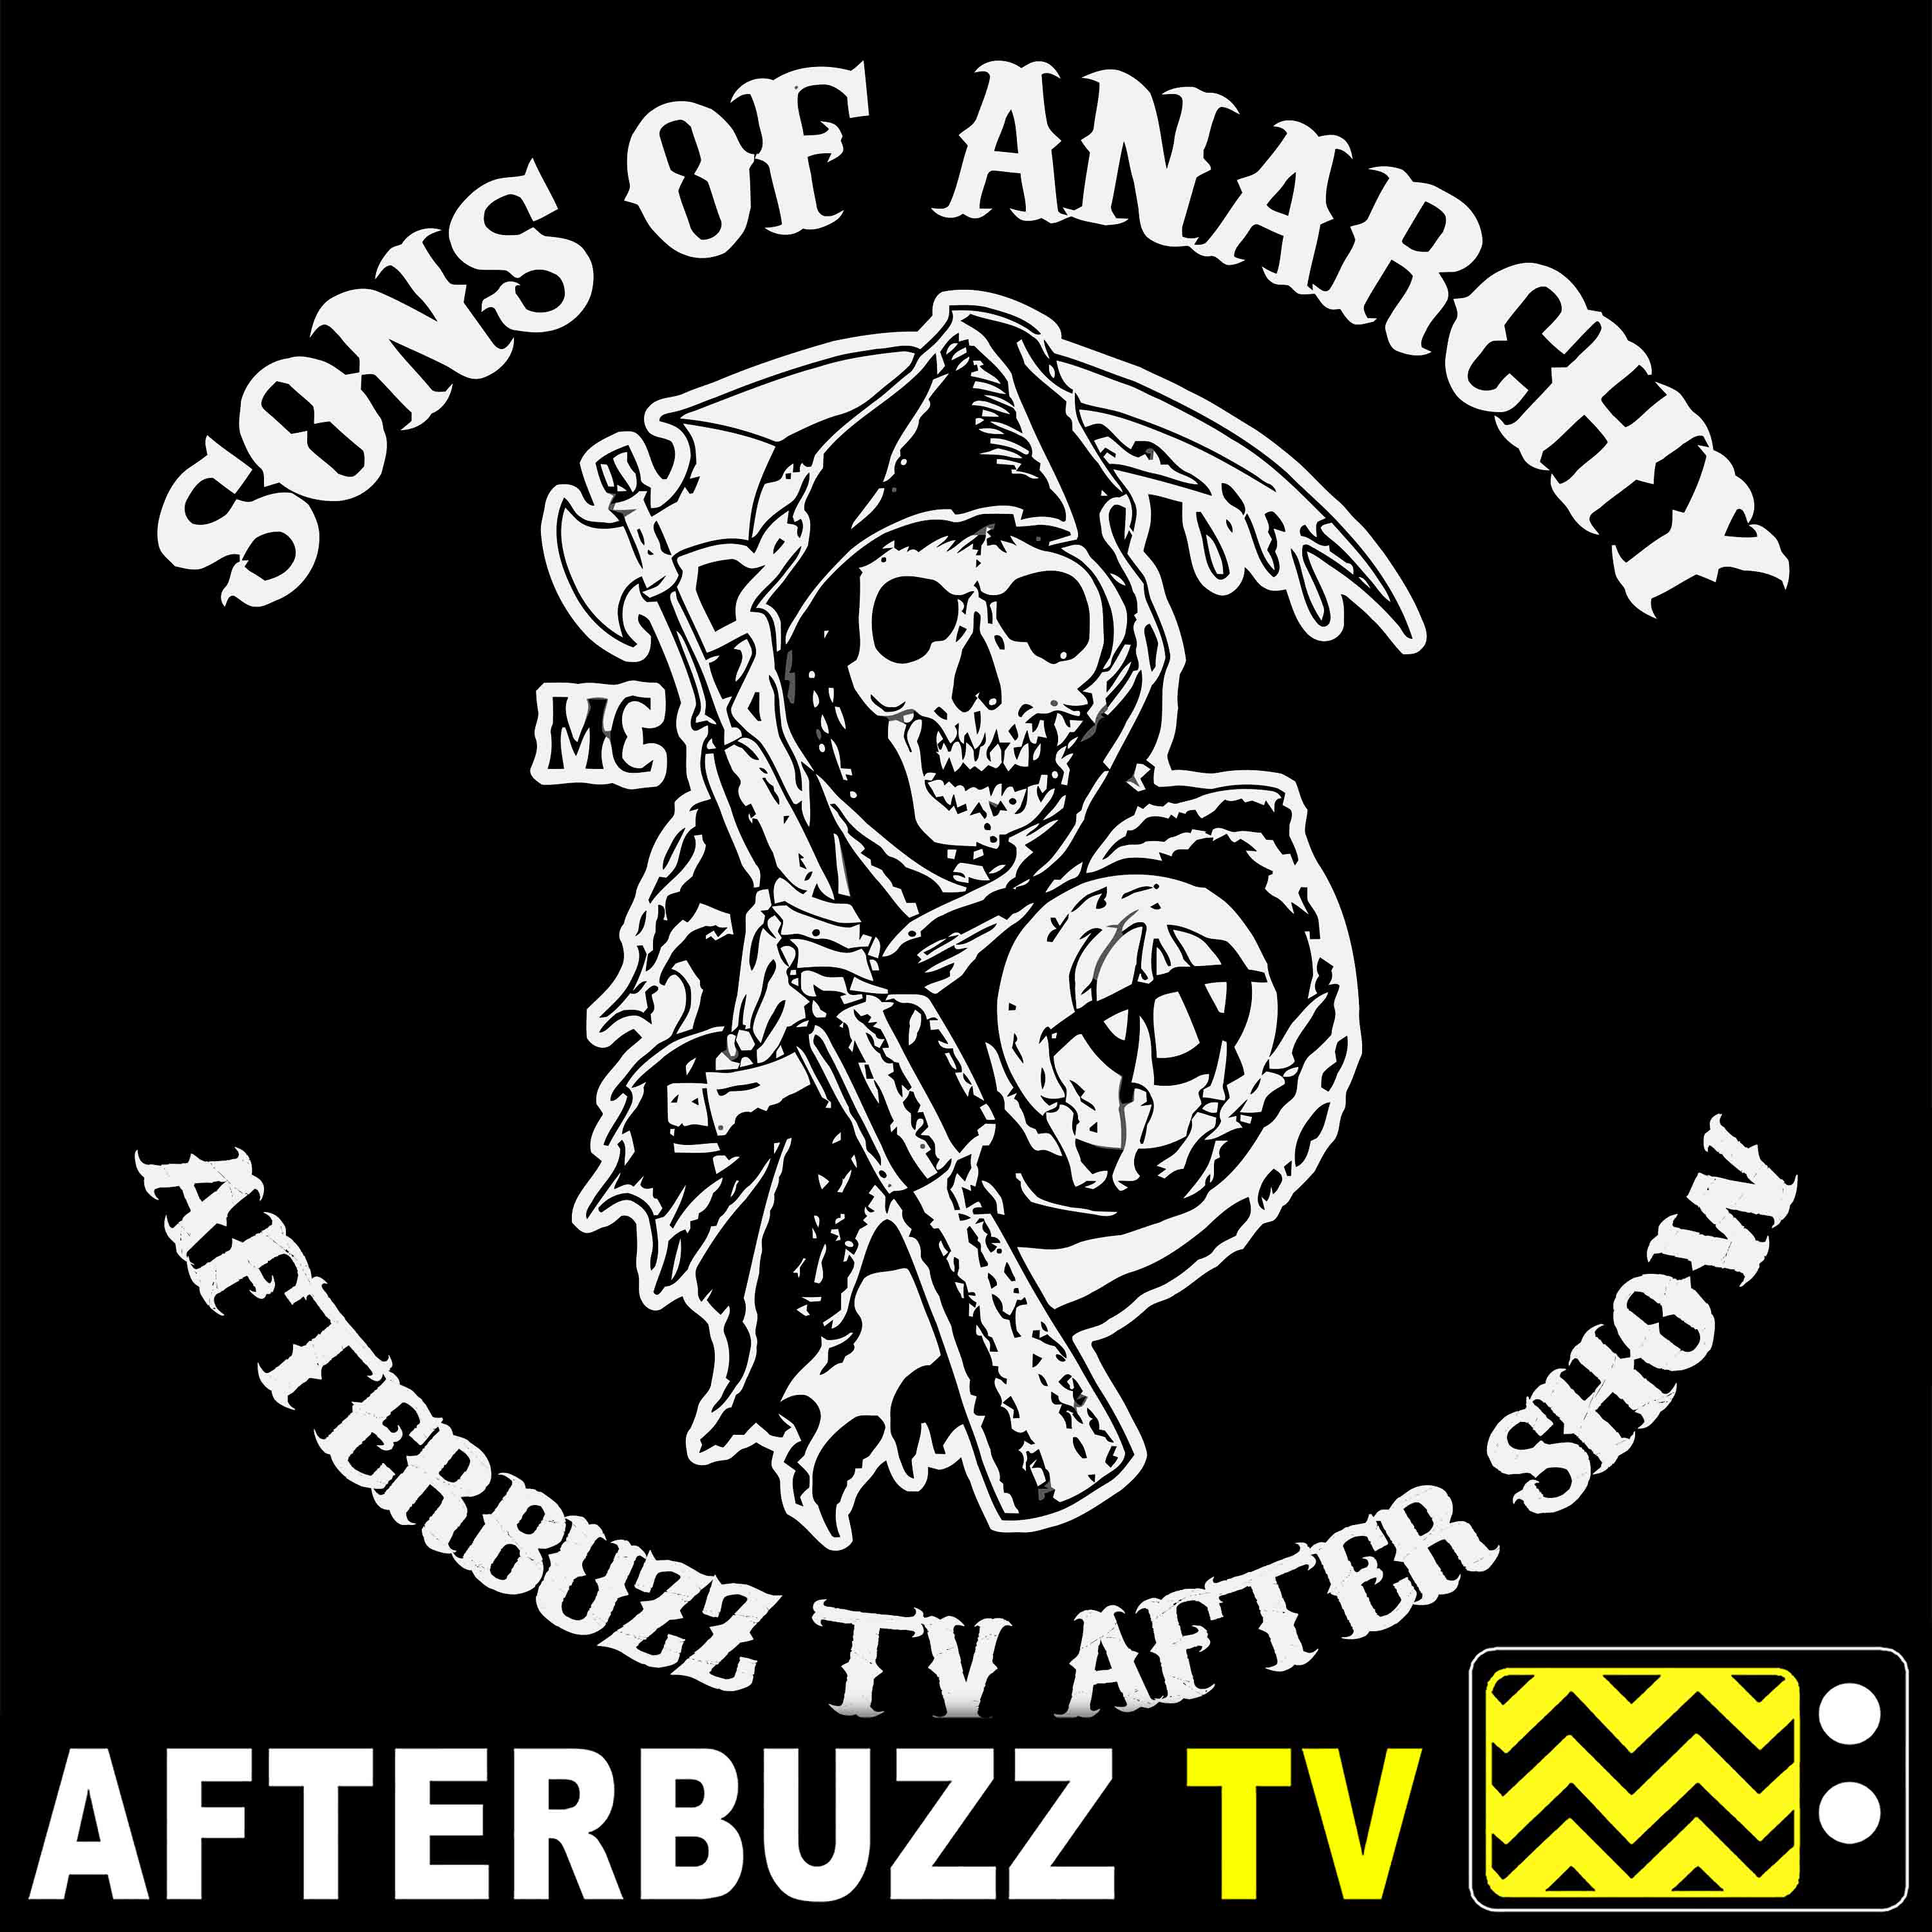 Sons Of Anarchy Reviews And After Show By Afterbuzz Tv On Apple Podcasts